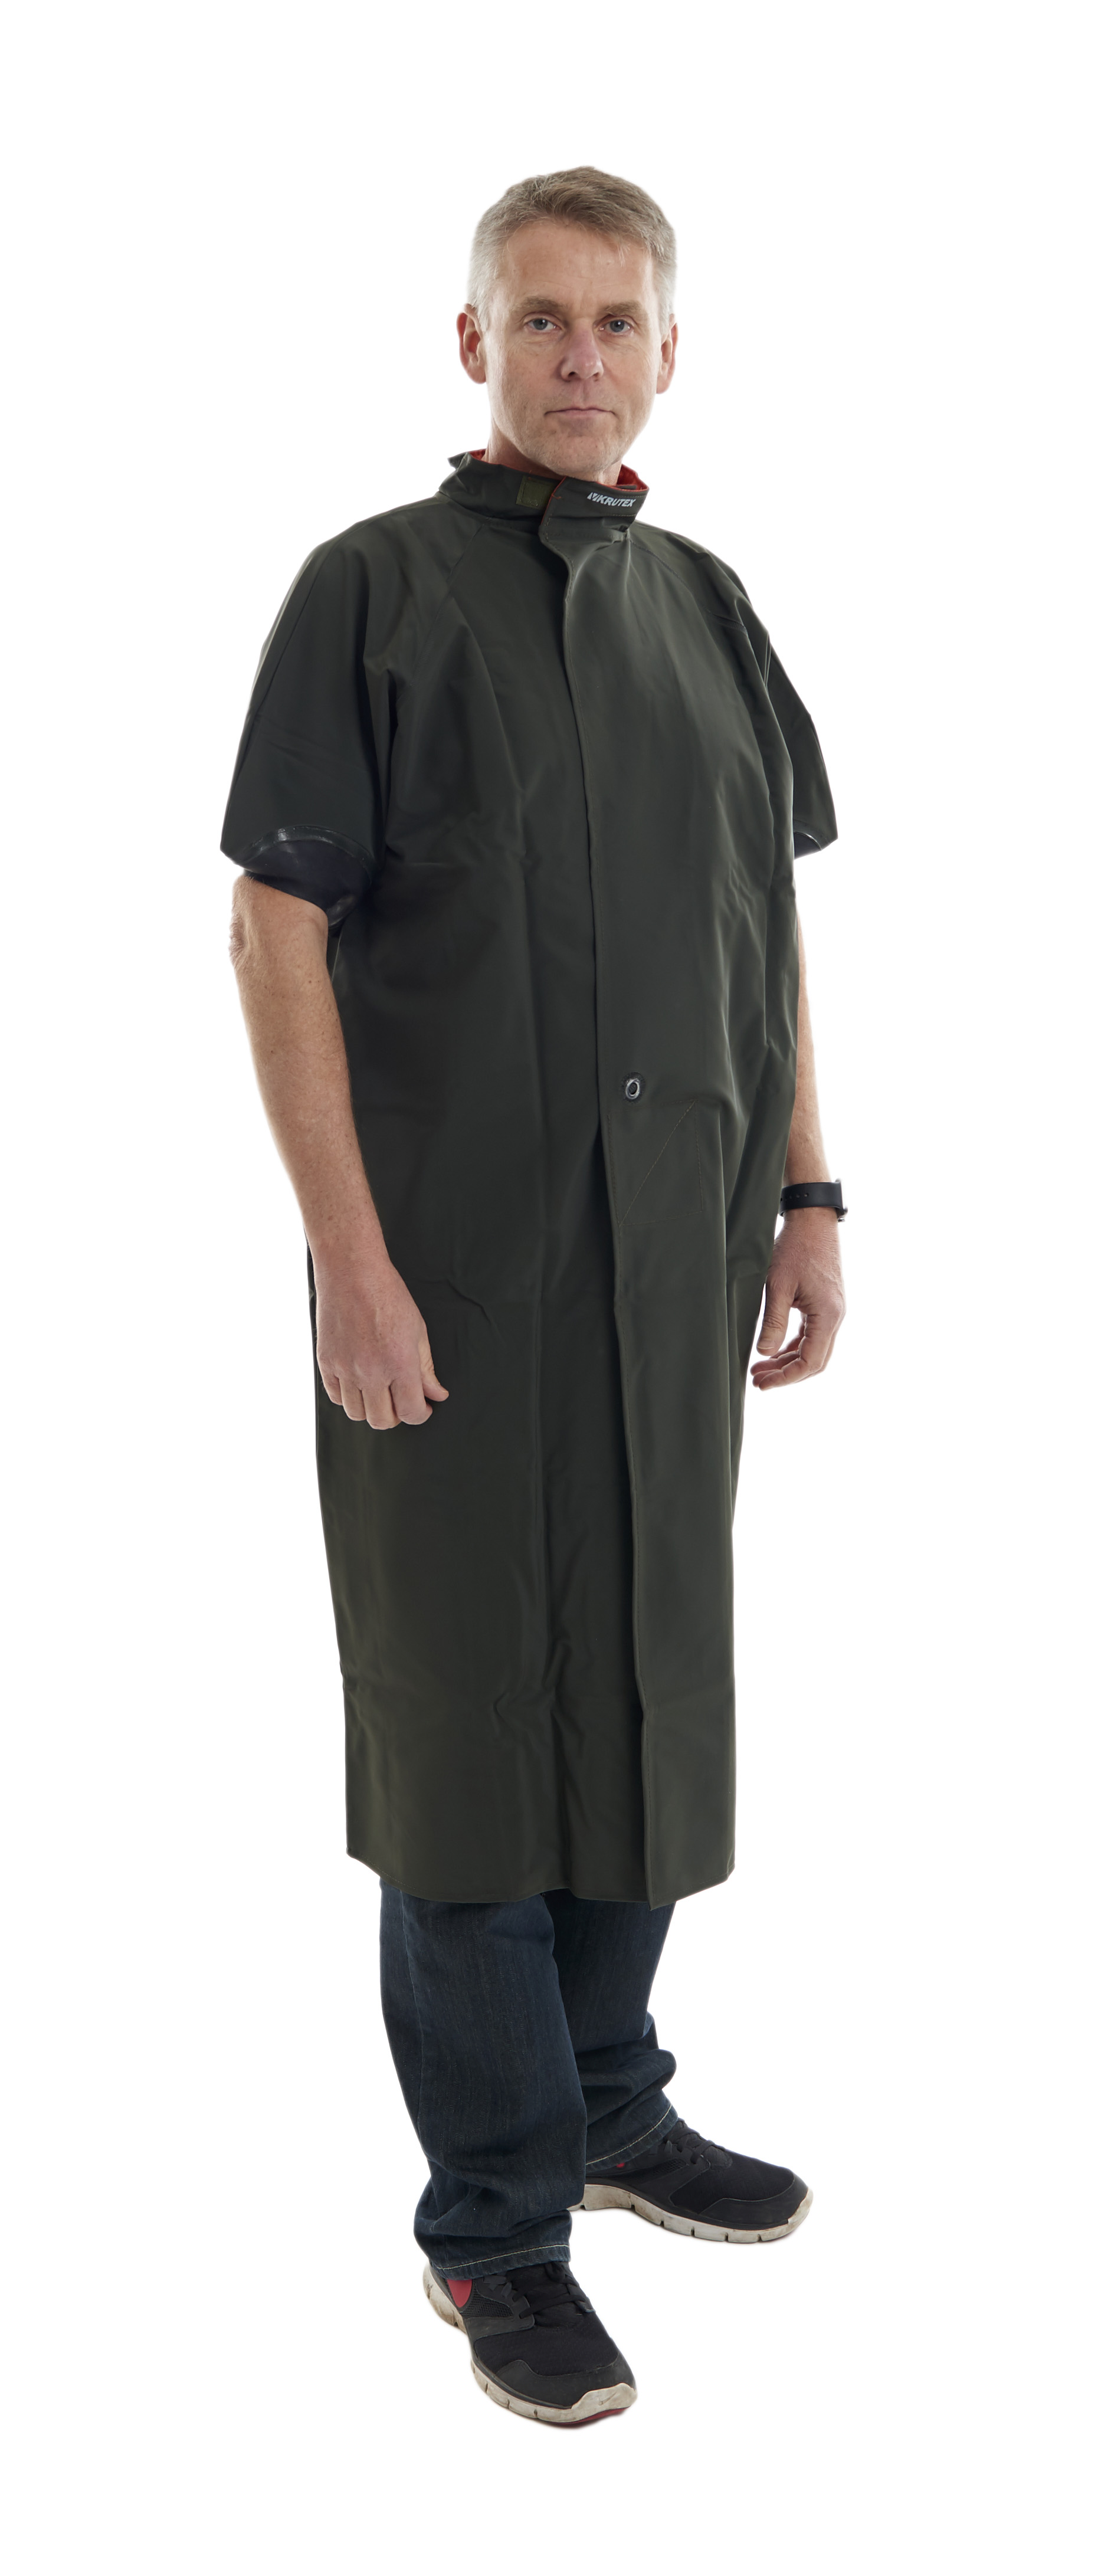 KRUTEX obstetric gown with velcro 130 cm